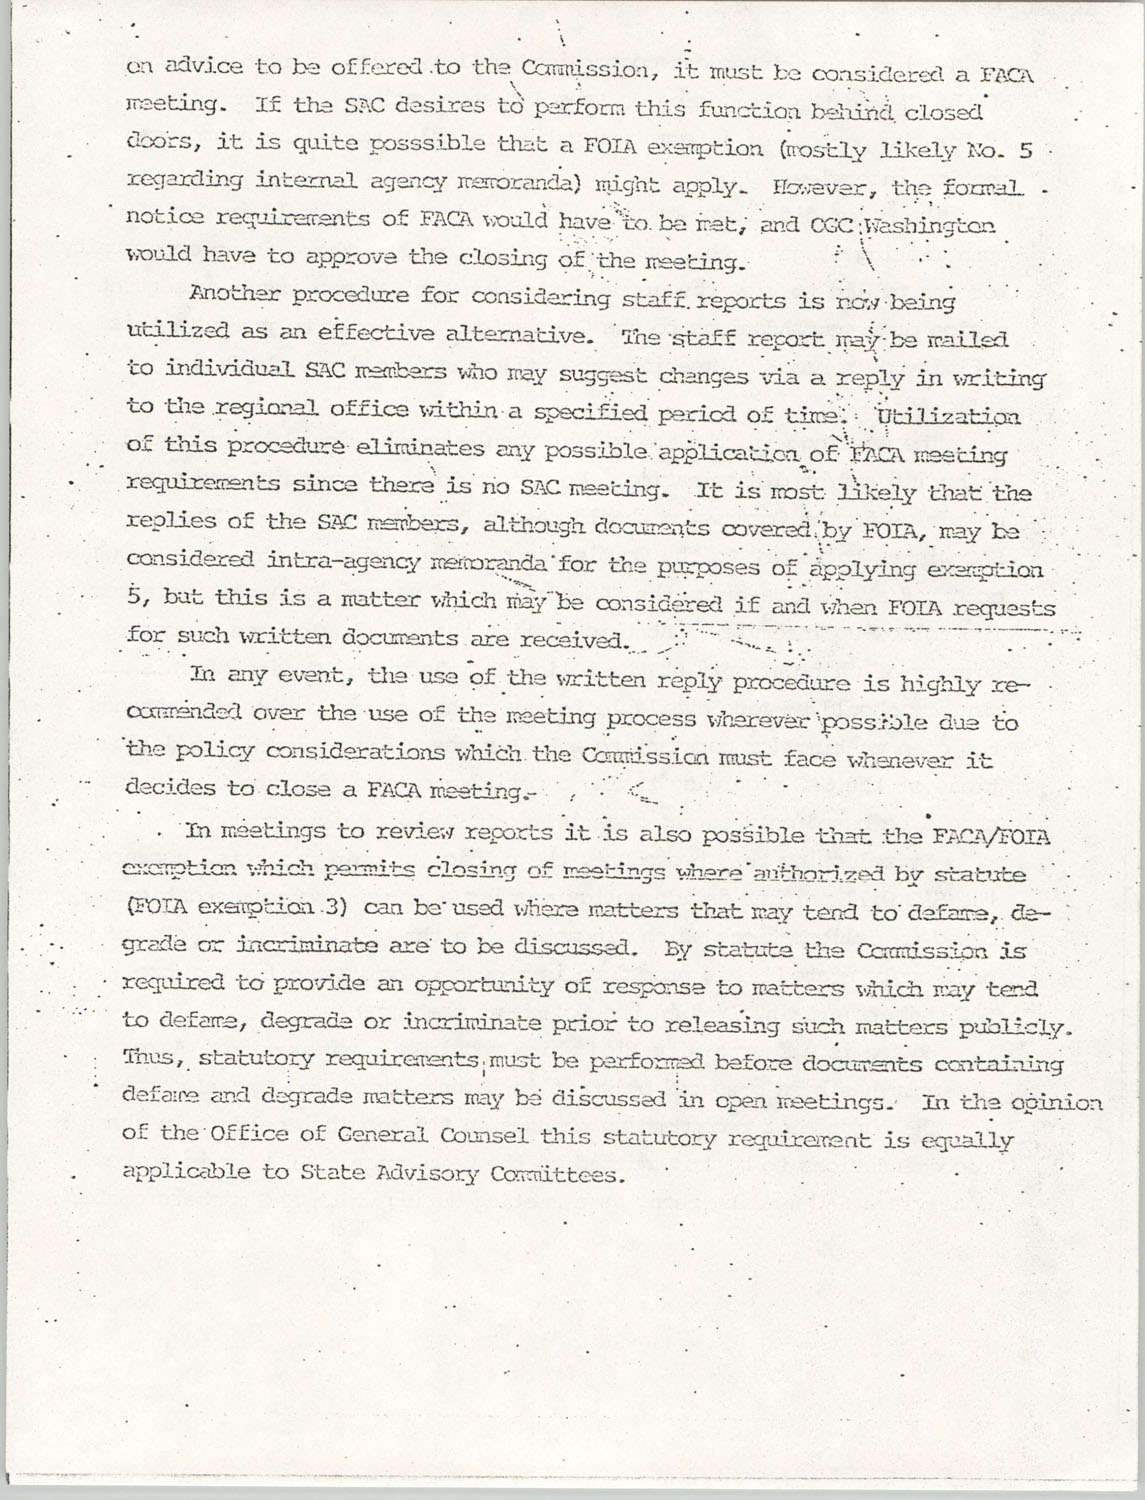 Memorandum from Lawrence B. Glick to Isaiah T. Creswell, August 7, 1975, Page 8